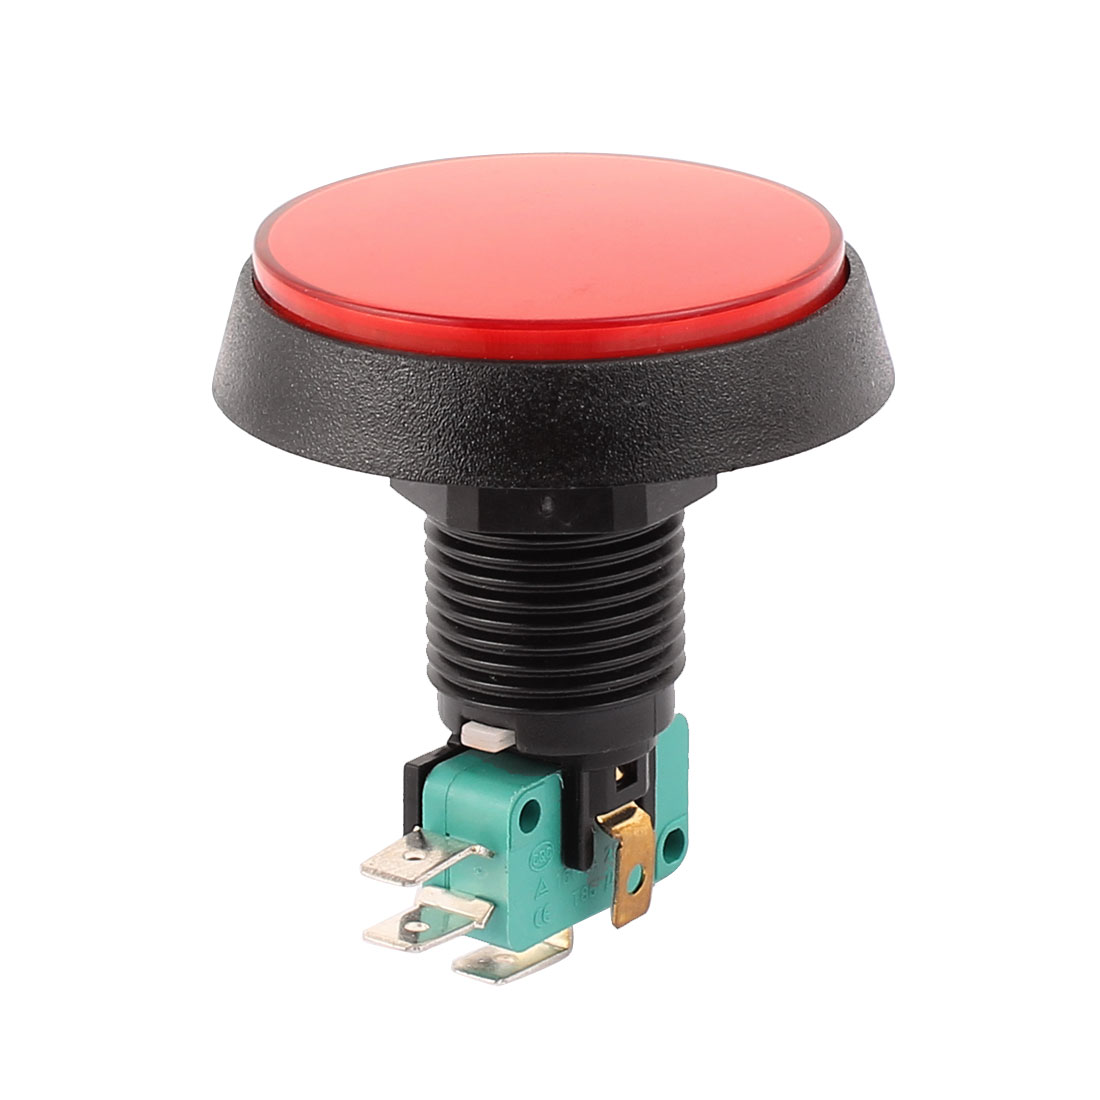 AC250V/16A 125V/15A 24mm Panel Mount Red Light SPDT Momentary Push Button Switch